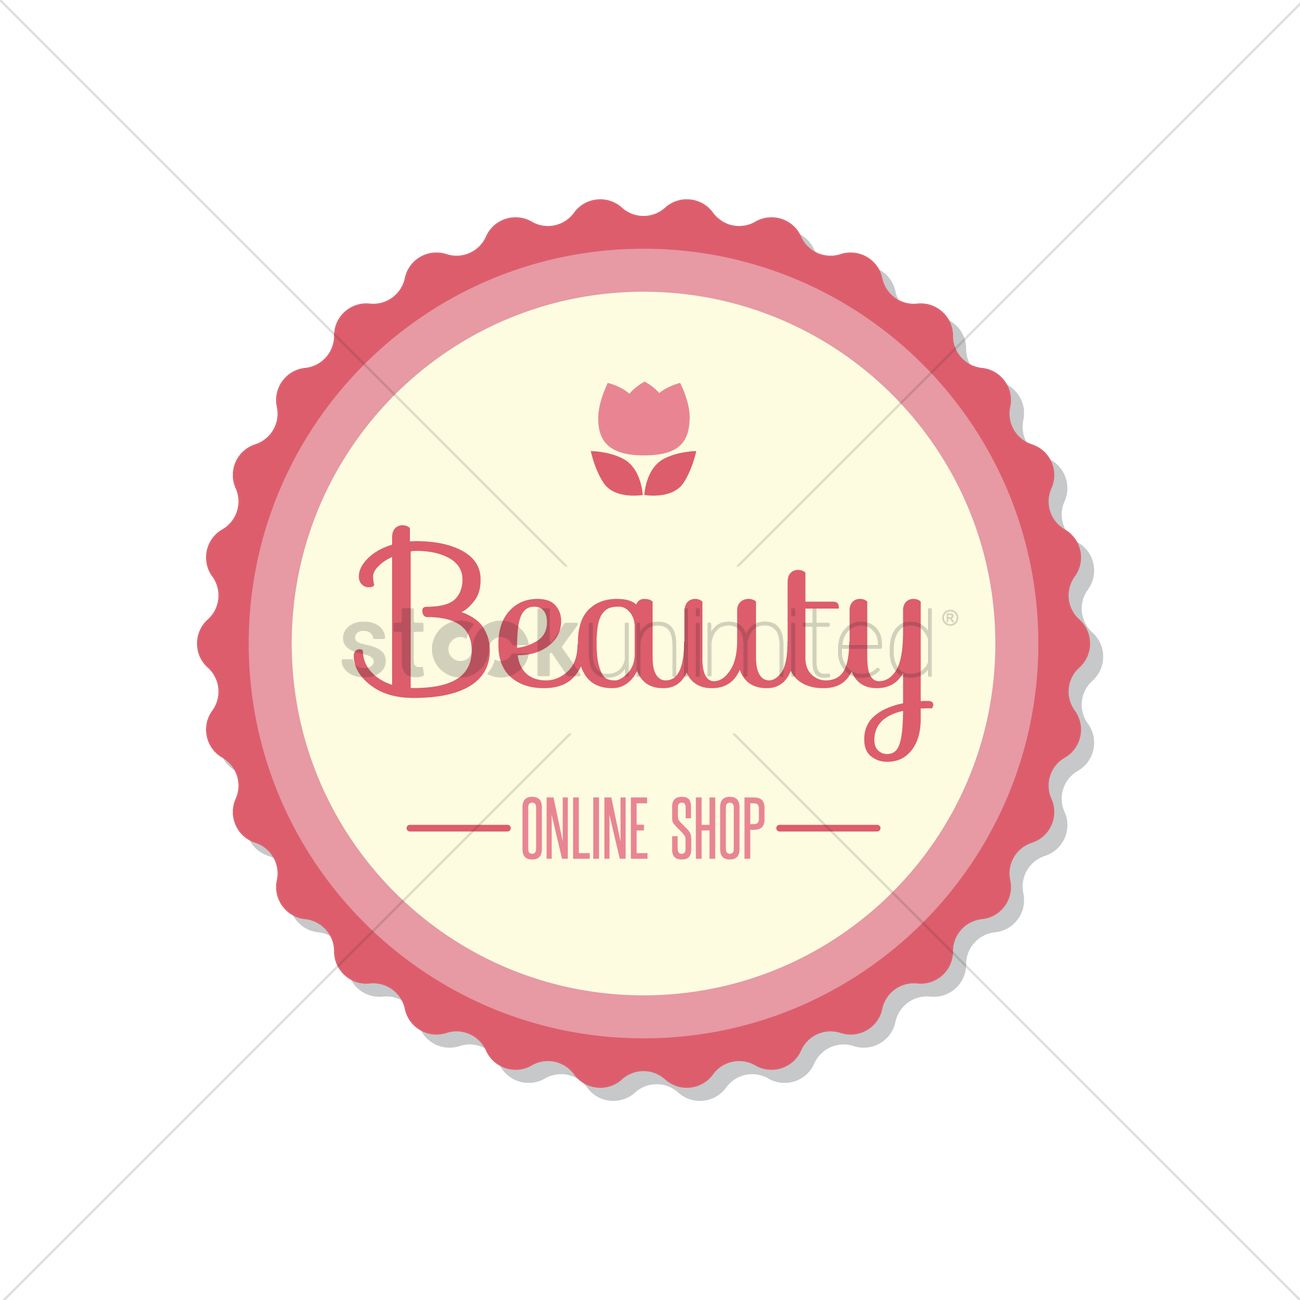 online beauty store cheap - Online beauty shop label Vector Image - 1804892 | StockUnlimited